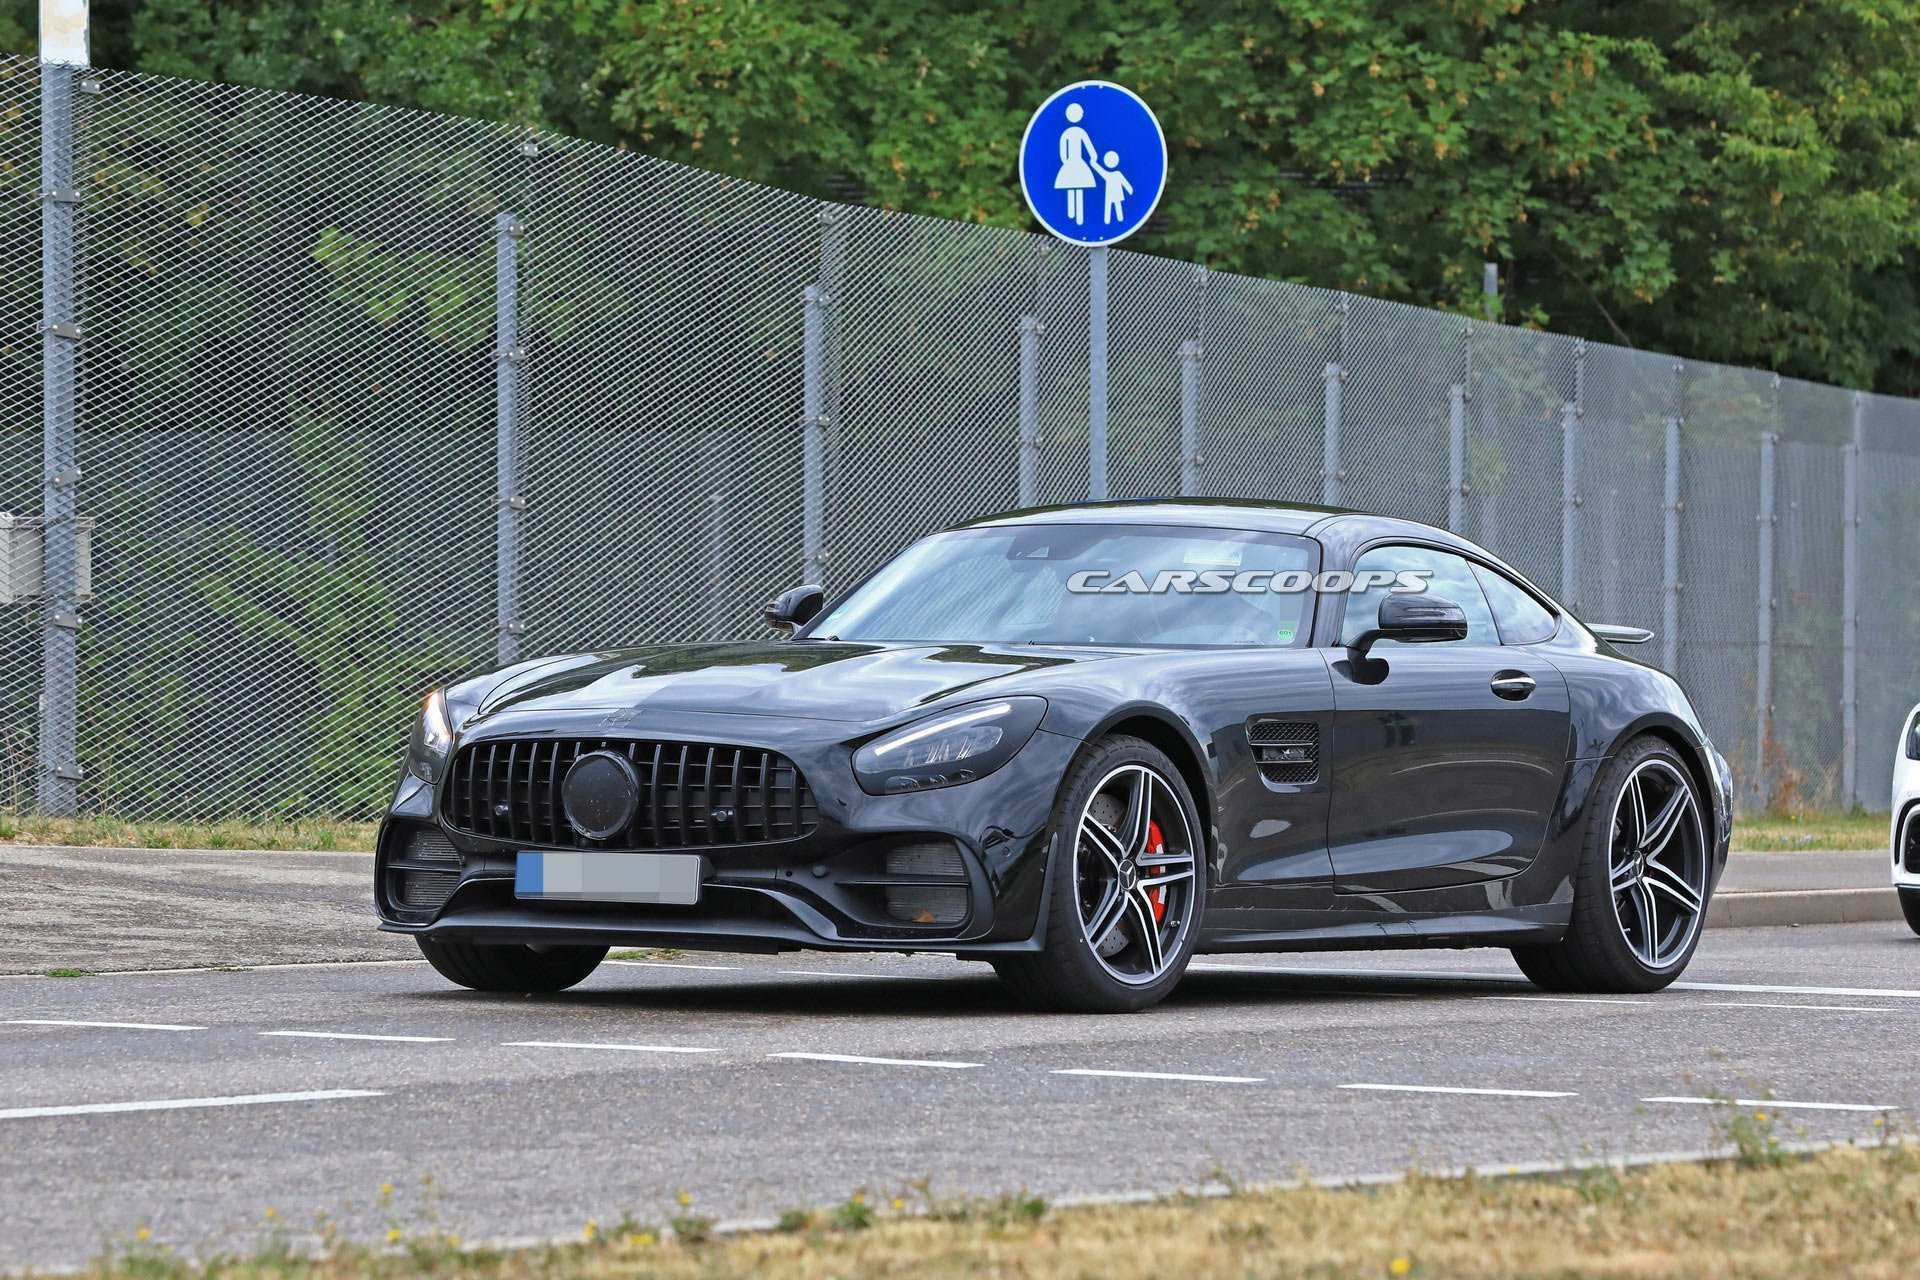 17 New Mercedes 2020 Amg Gt Wallpaper for Mercedes 2020 Amg Gt